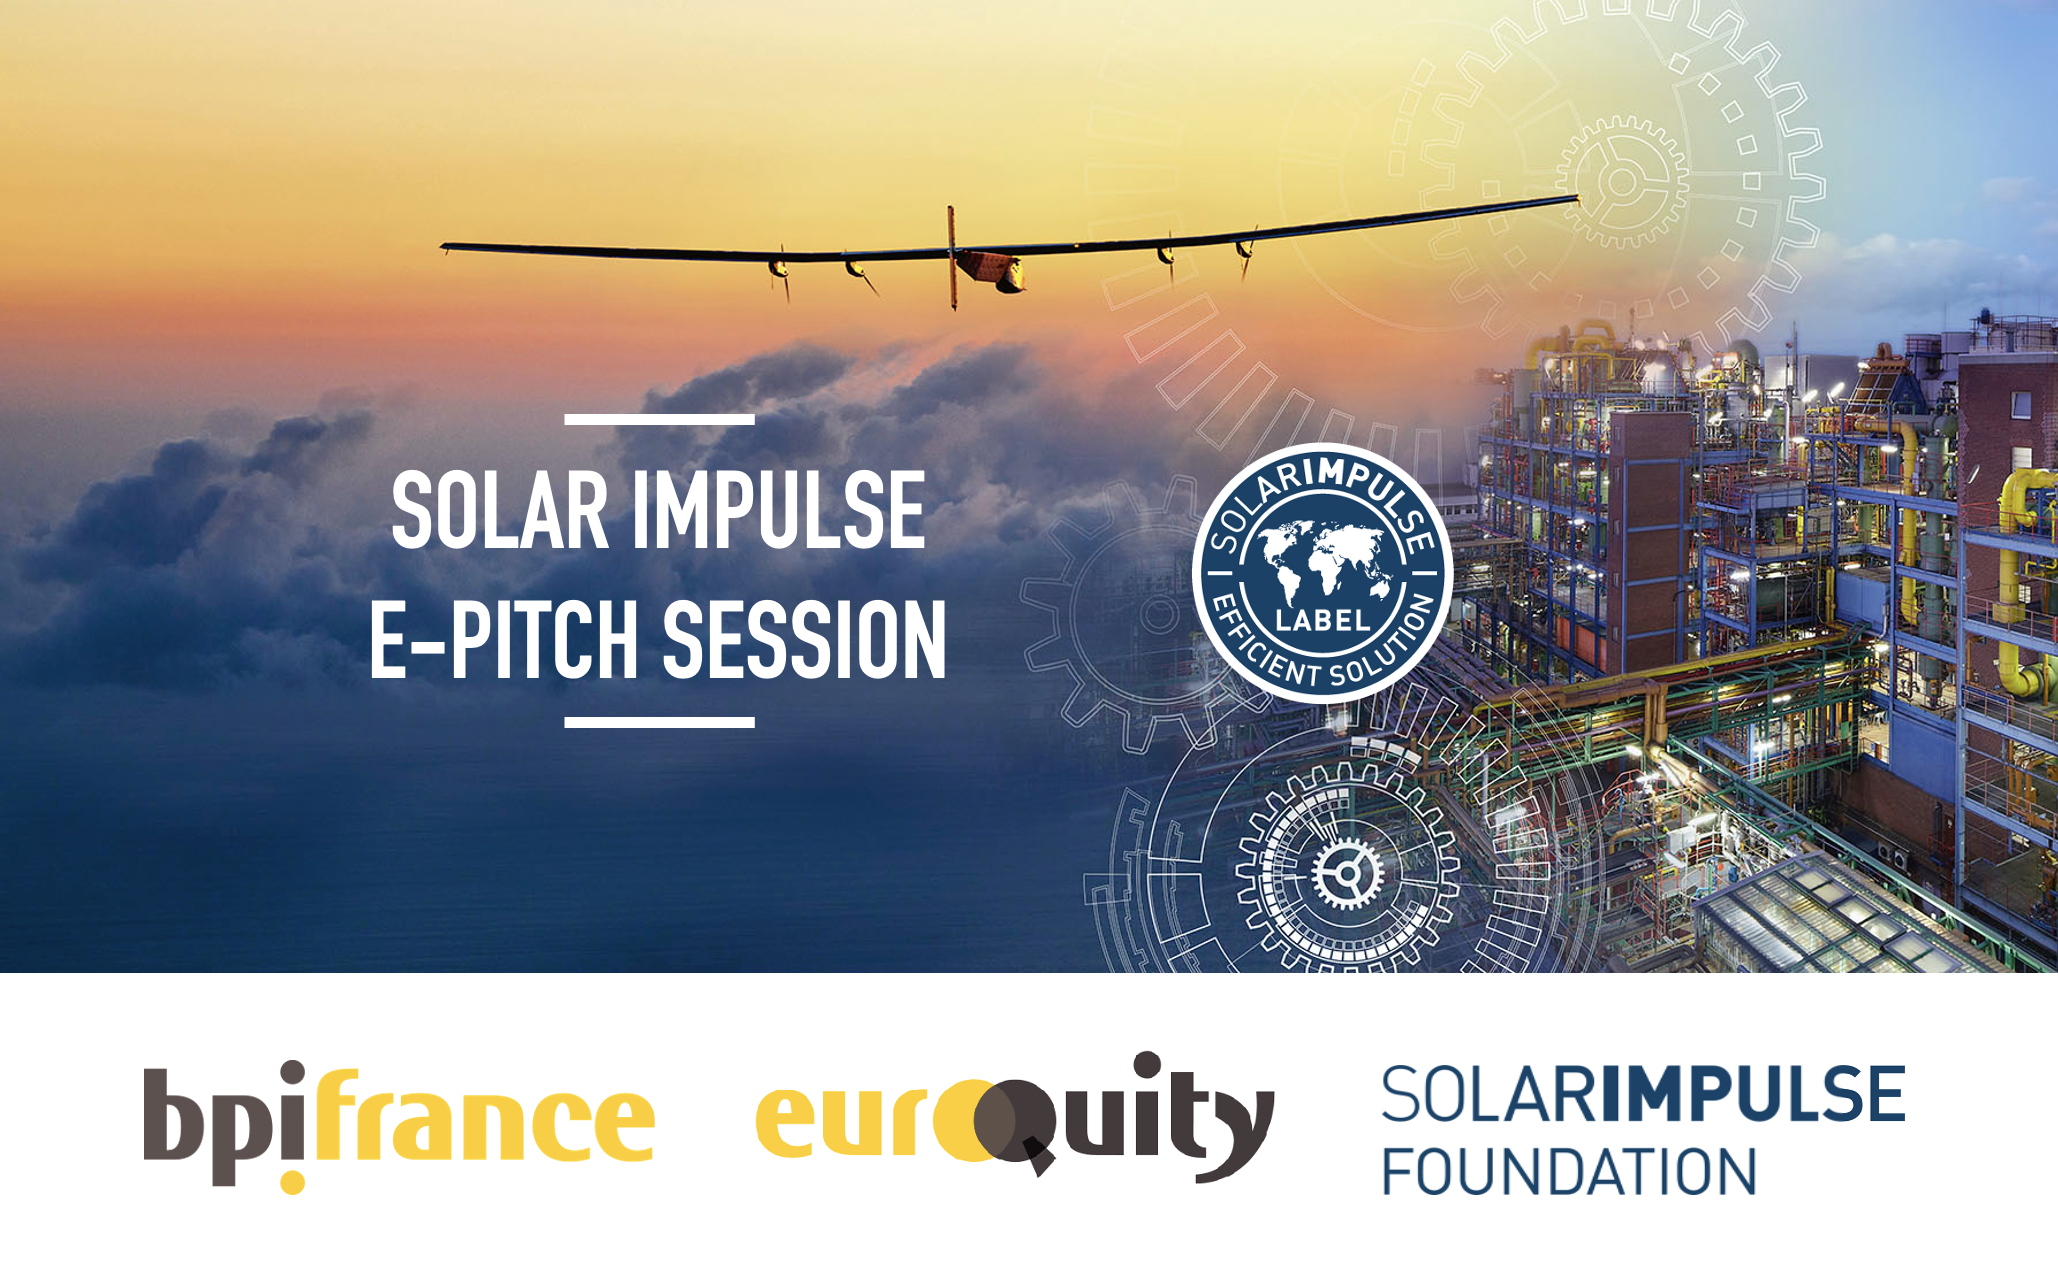 JOIN THE SOLAR IMPULSE x AIR LIQUIDE EPITCH ON DECEMBER 10th AT 5:00PM CET